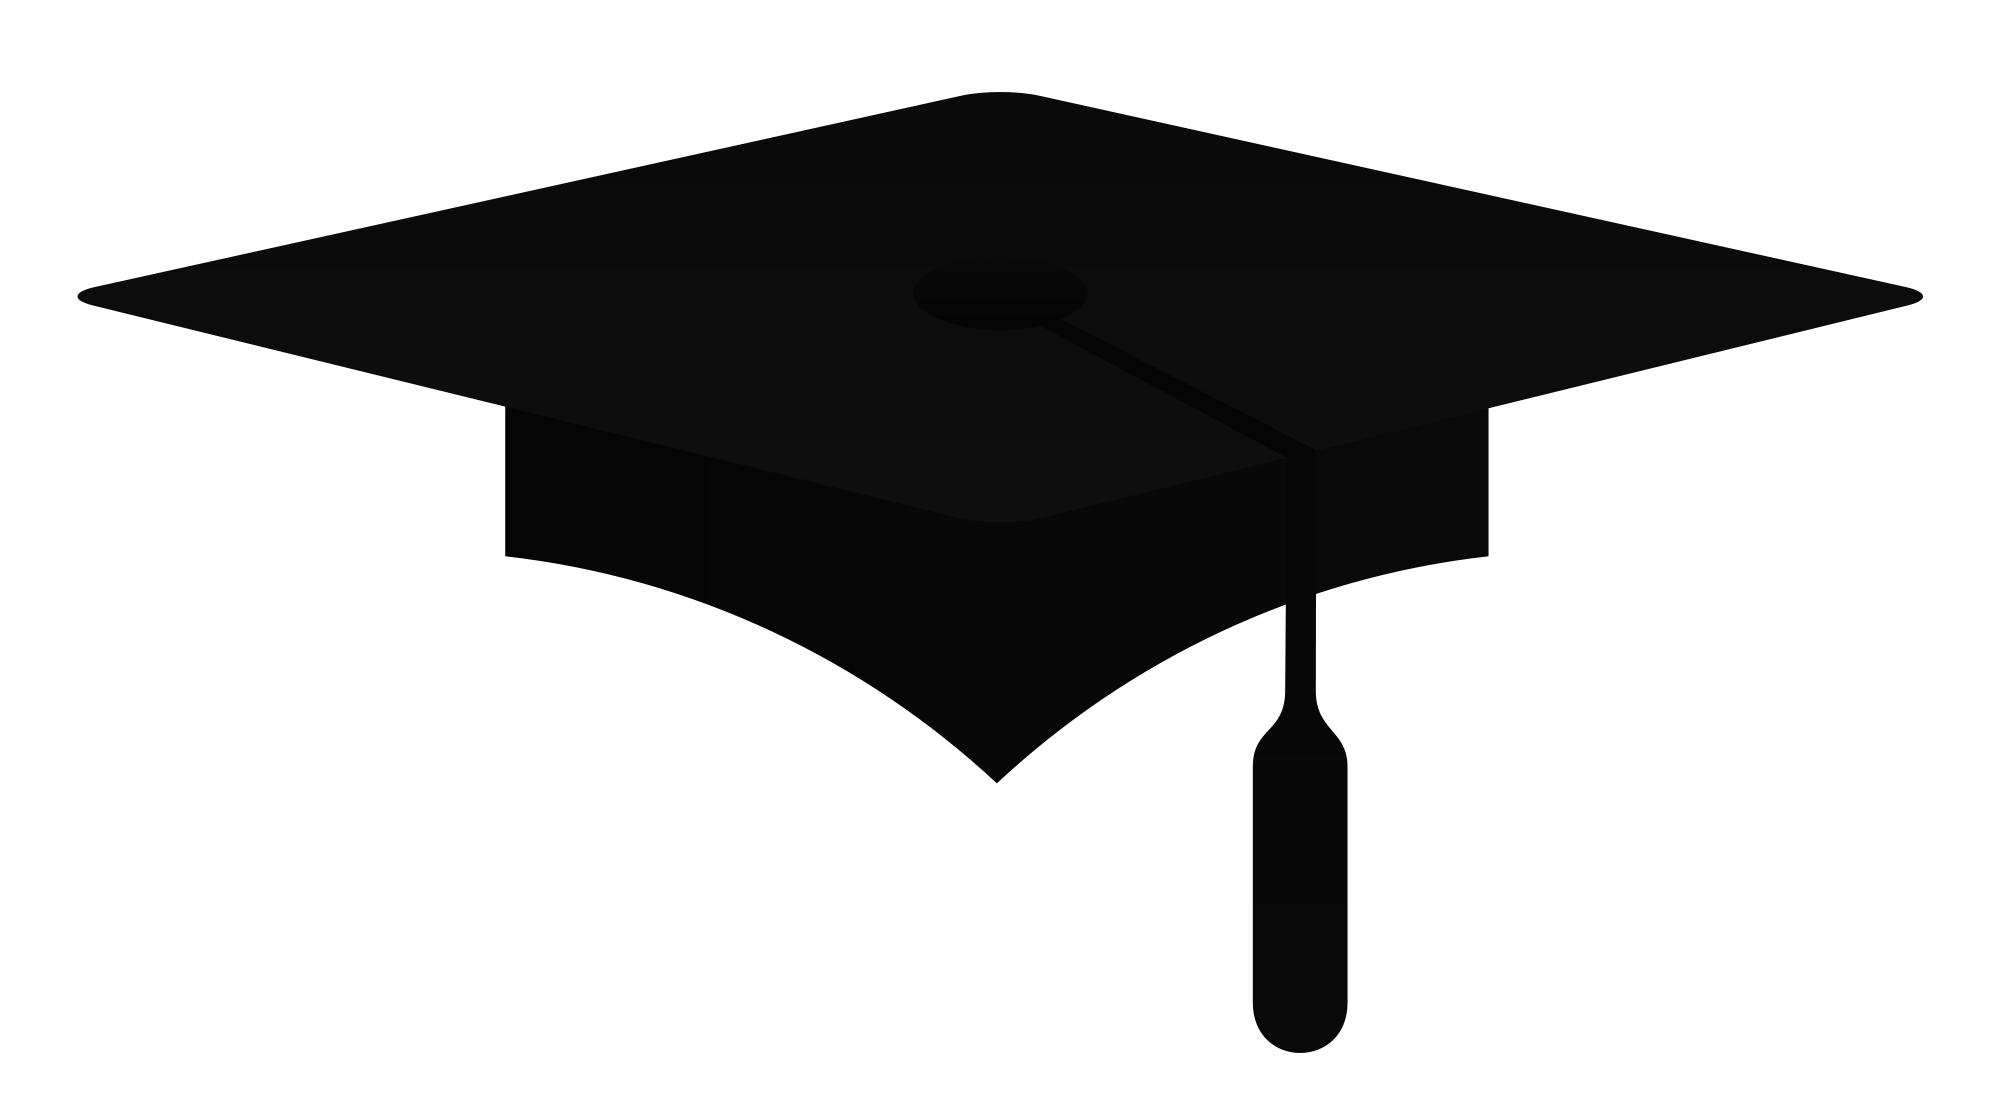 Tracing latino educational inequality. Graduate clipart mortar board